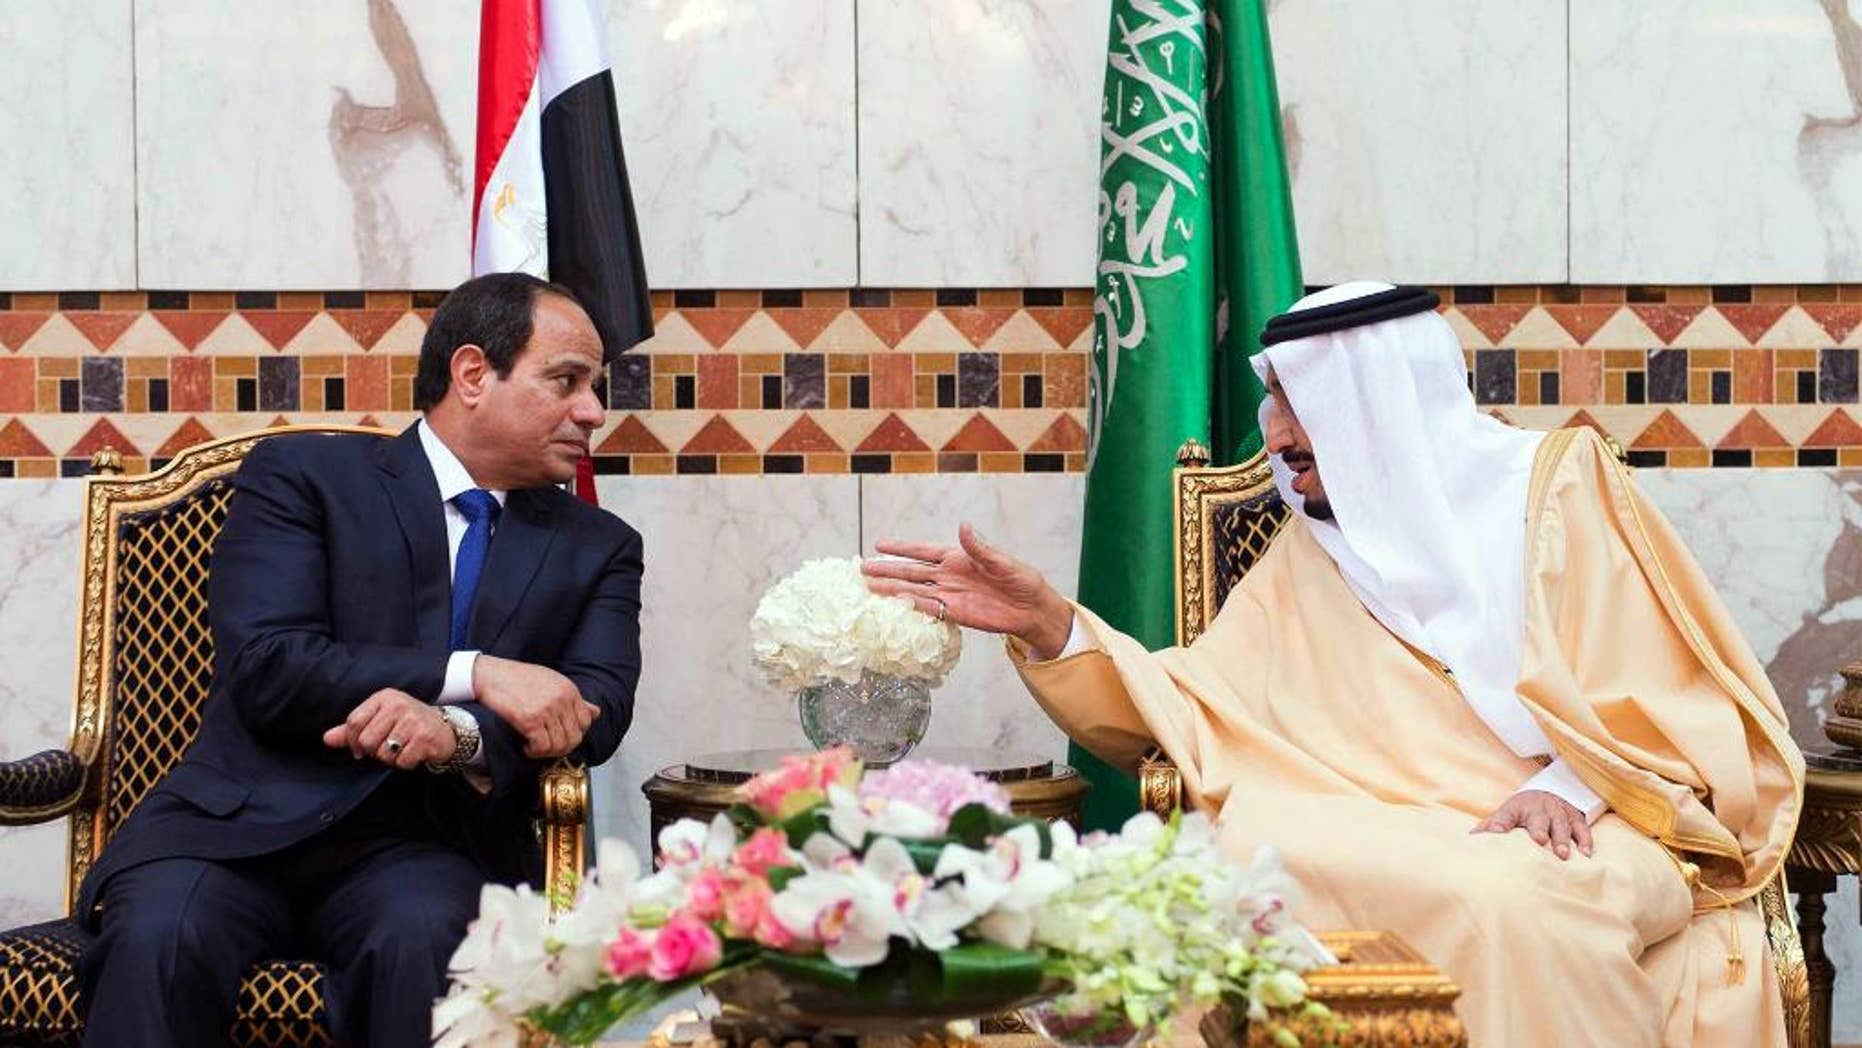 FILE - In this file photo provided by the Saudi Press Agency on March 1, 2015, Saudi King Salman, right, meets with Egyptian President Abdel-Fattah el-Sissi upon his arrival to Riyadh Airbase, Riyadh, Saudi Arabia. Egypt's president says his country remains committed to close relations with its Gulf Arab allies, but will continue to independently pursue its own policies to safeguard Arab security. El-Sissi's comments on Thursday, Oct. 13, 2016 were his first after a diplomatic row erupted this week between Egypt and close ally Saudi Arabia over Syria.(SPA via AP, File)